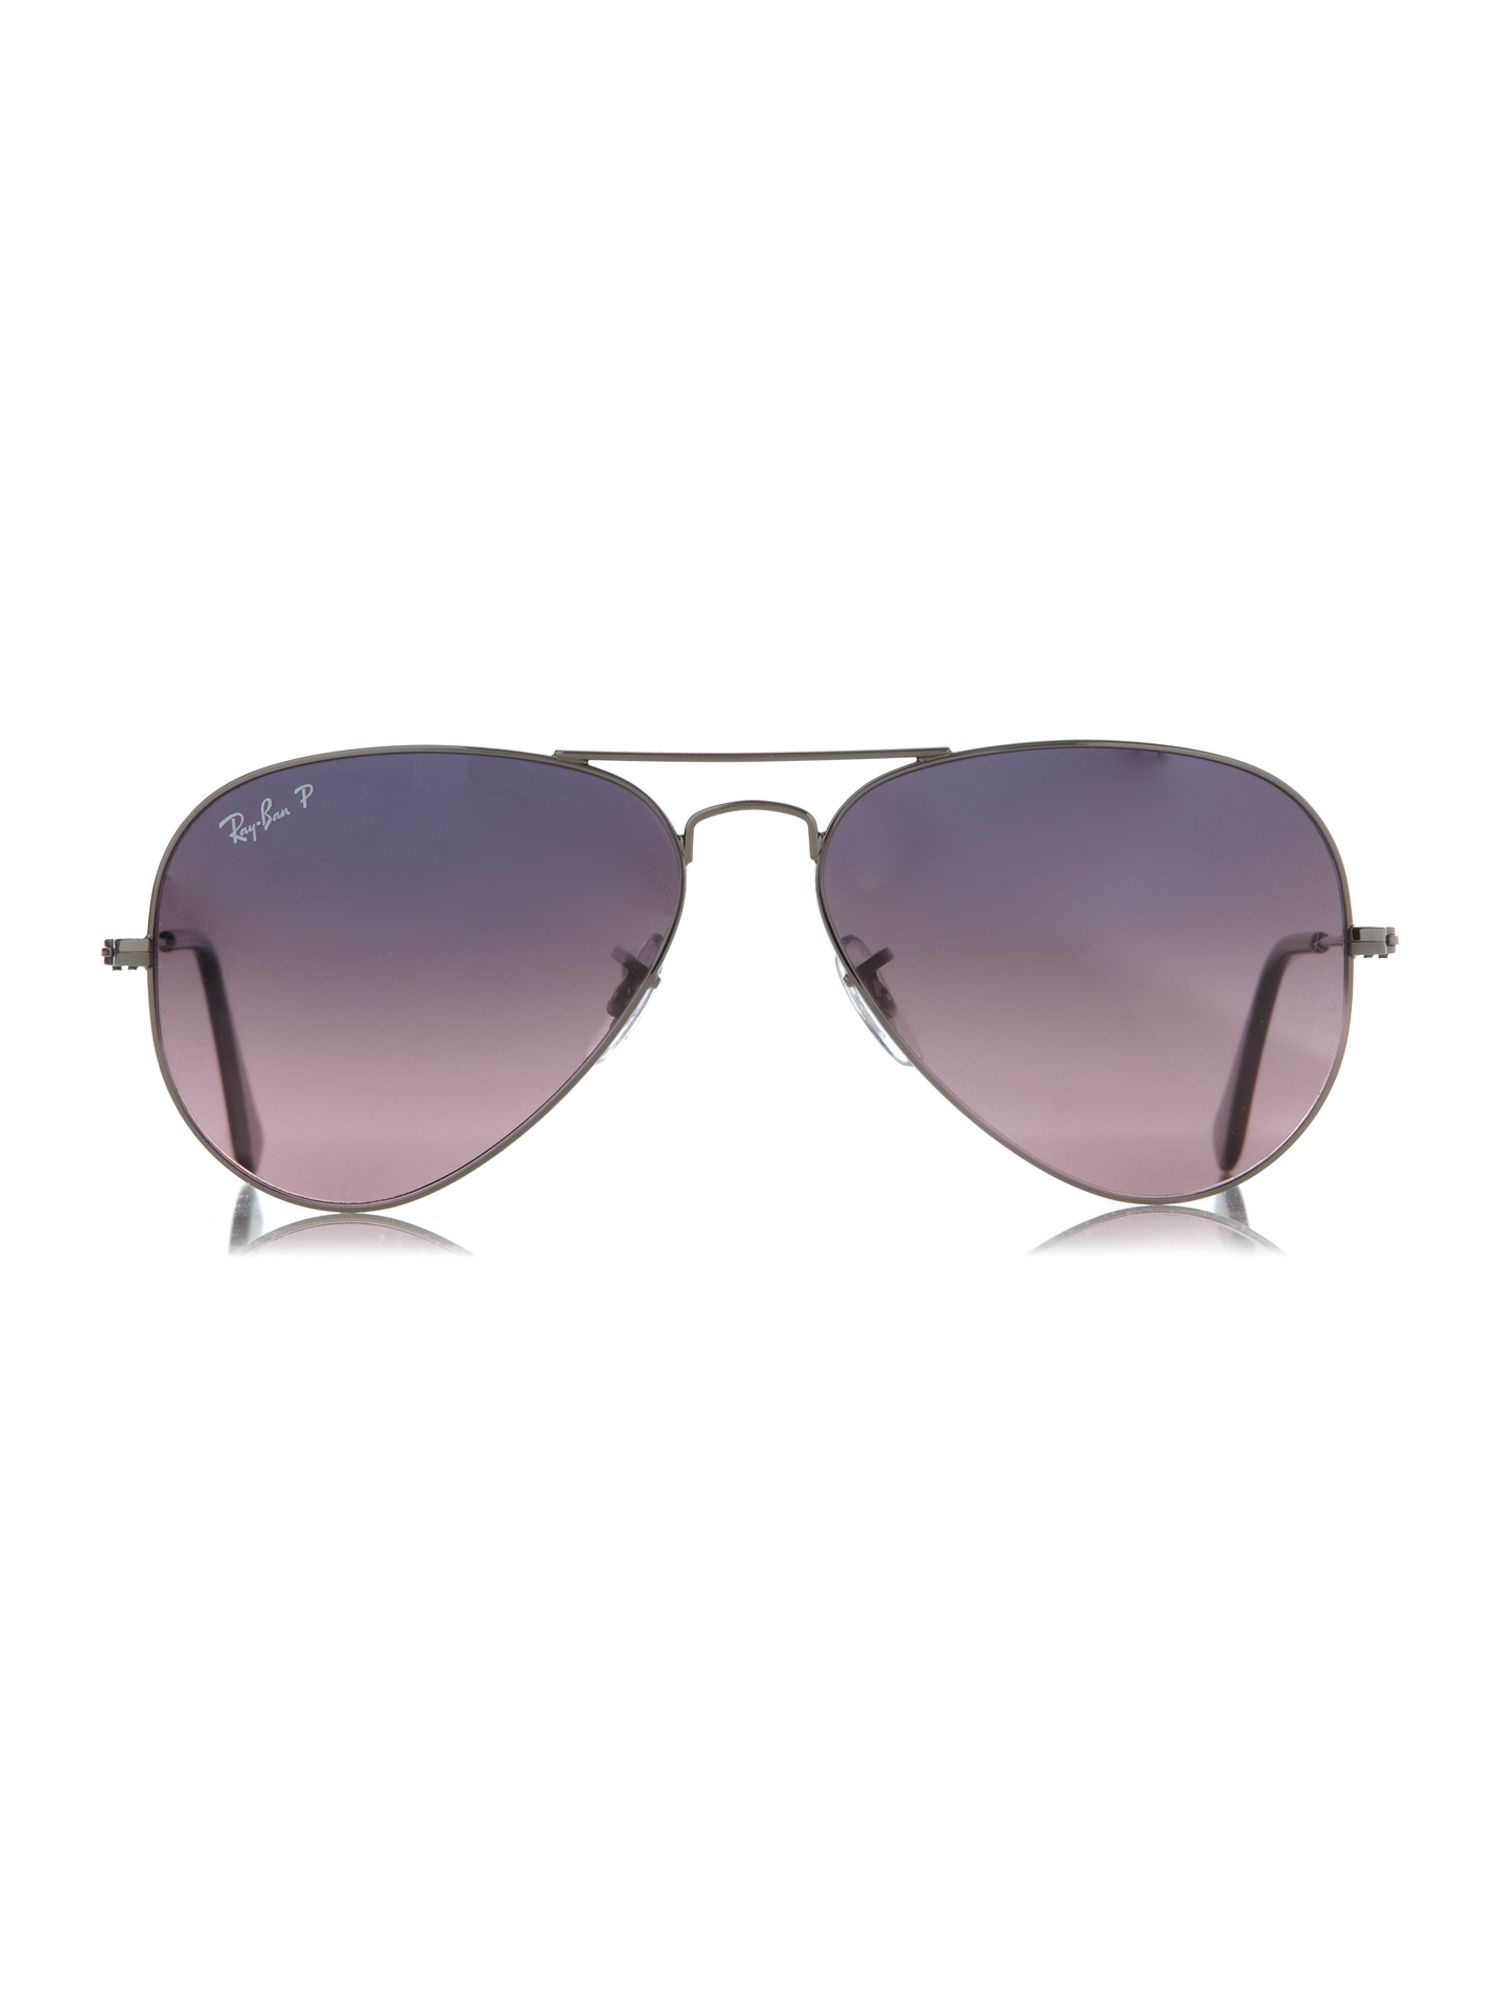 Unisex RB3025 004/77 L.Metal Aviator sunglasses